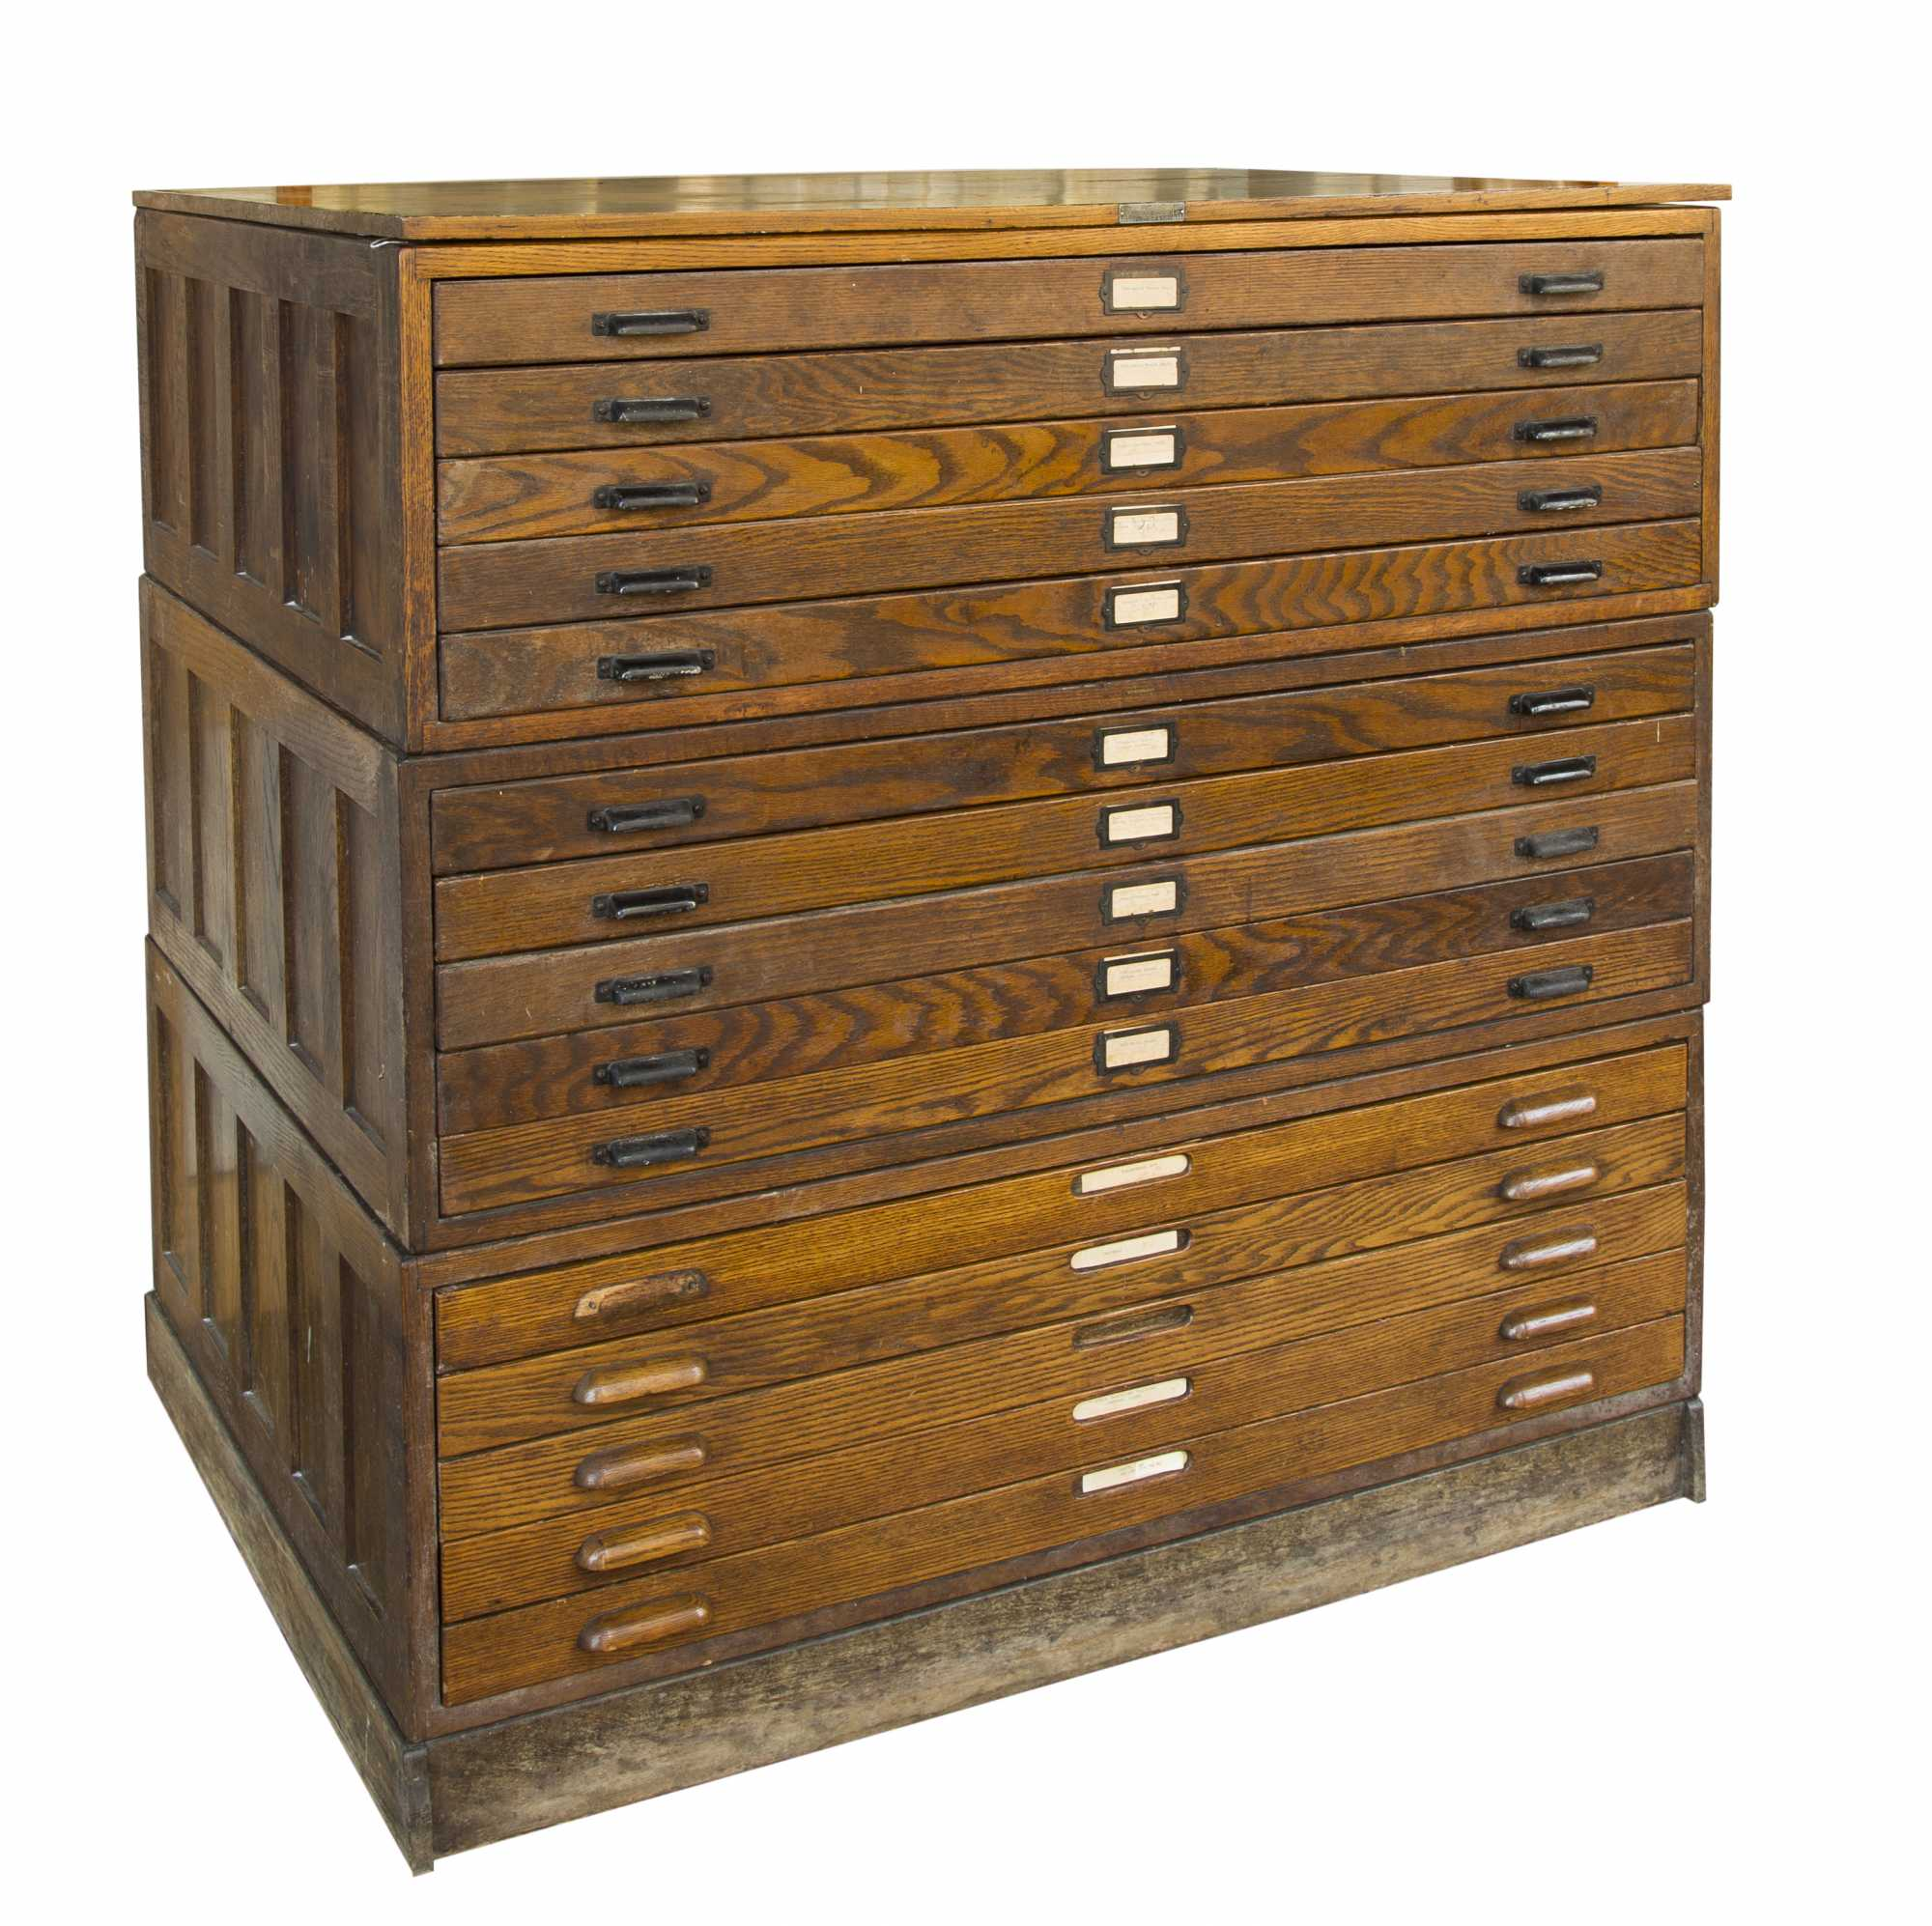 Oak Map Case of 15 Drawers Map Case Furniture on map chairs, map cabinets, map clothing, map chests, map clocks, map case table, map lamps, map case desk,